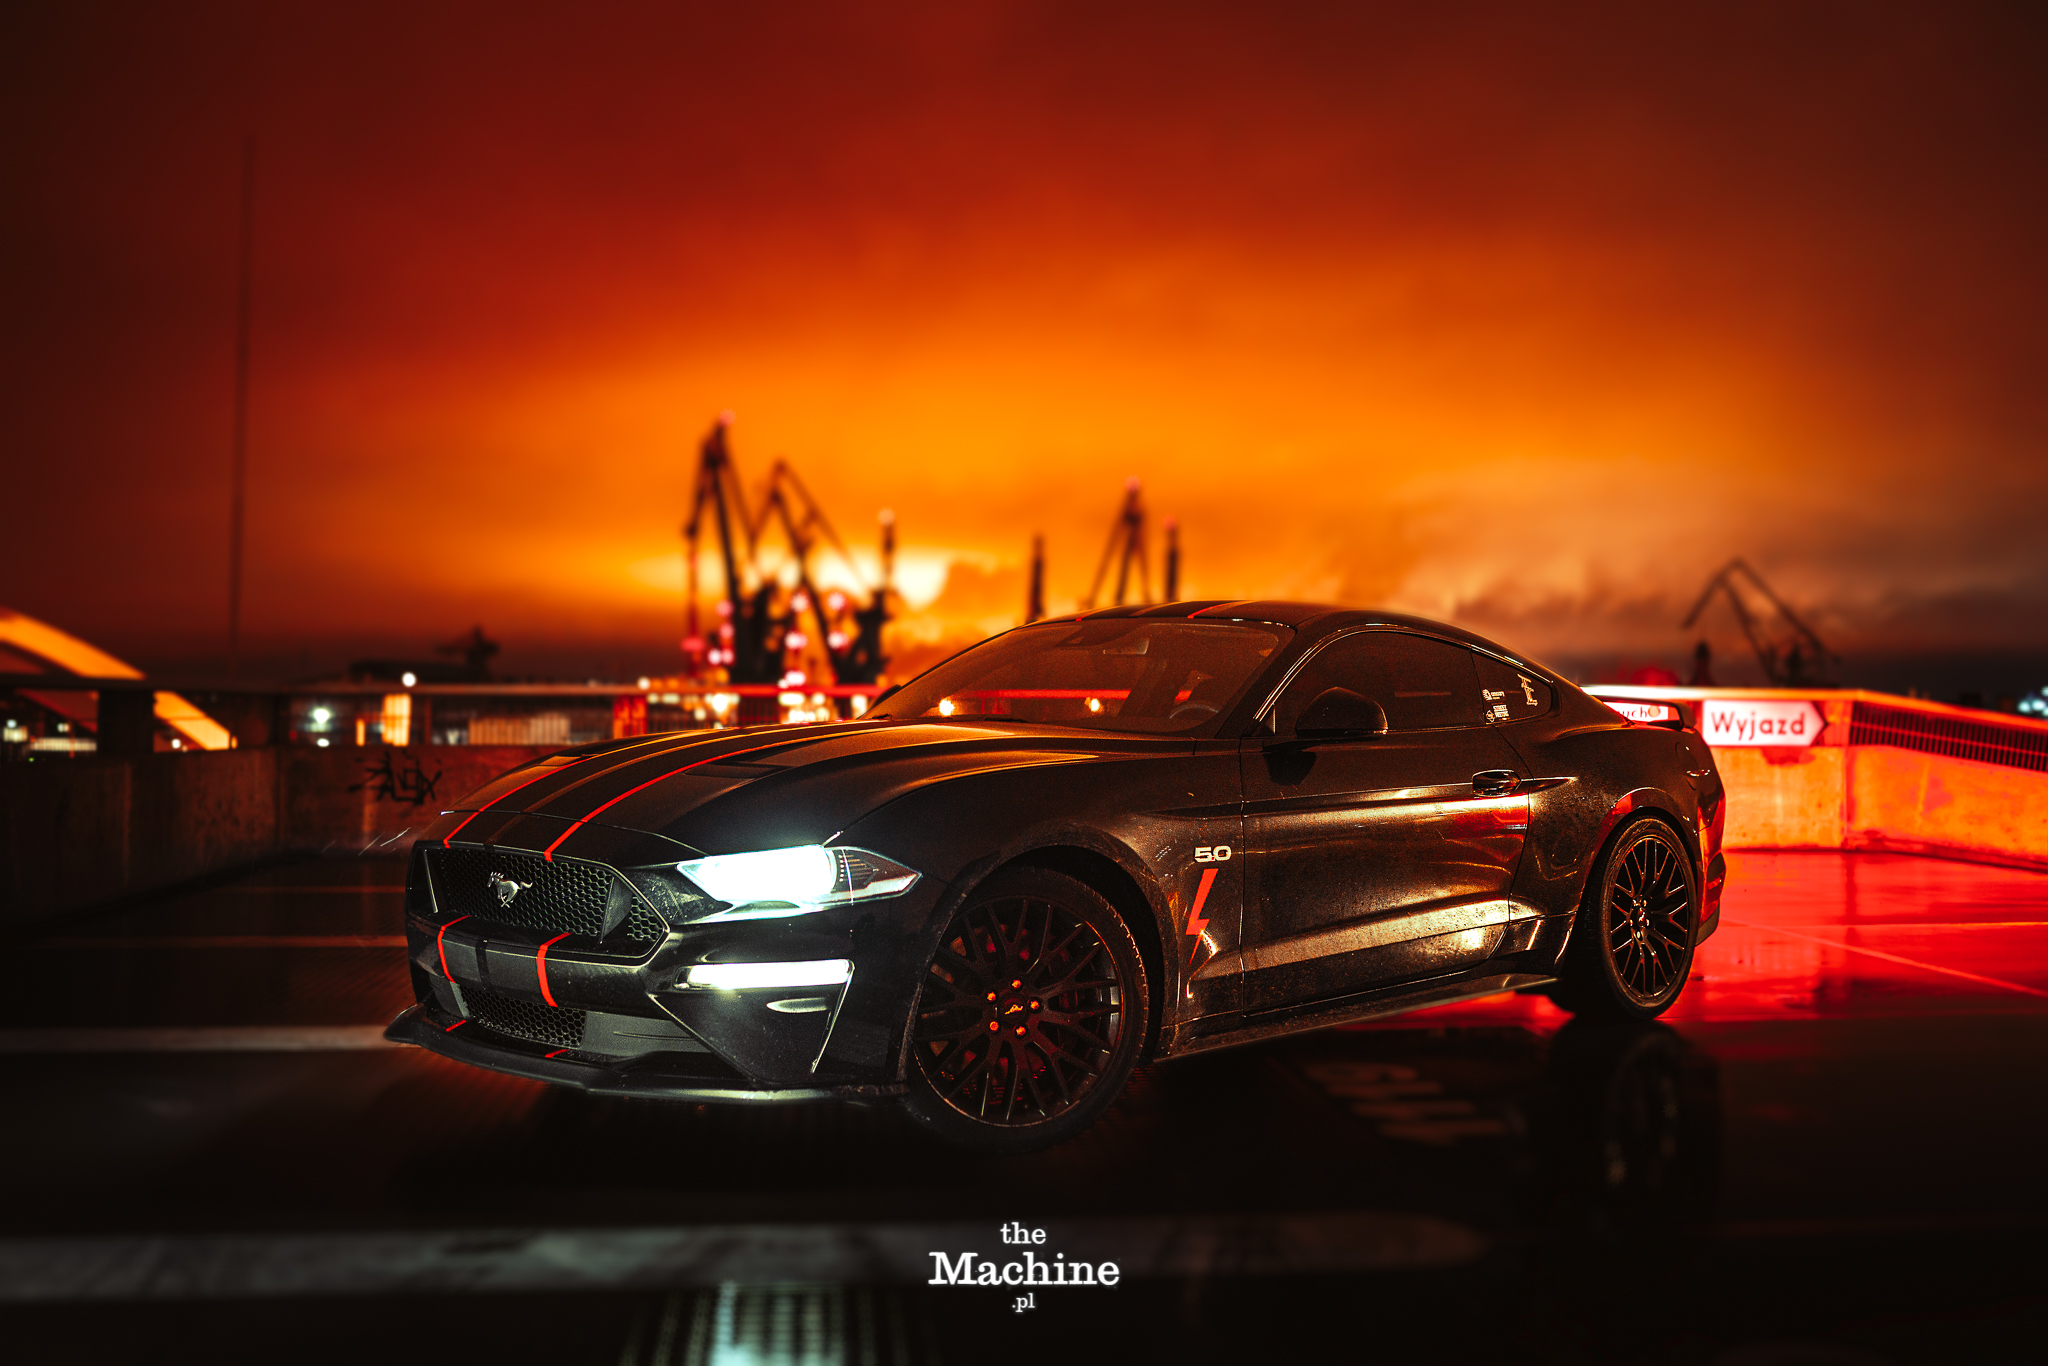 Ford MUSTANG GT #4 by TheMachine (23)